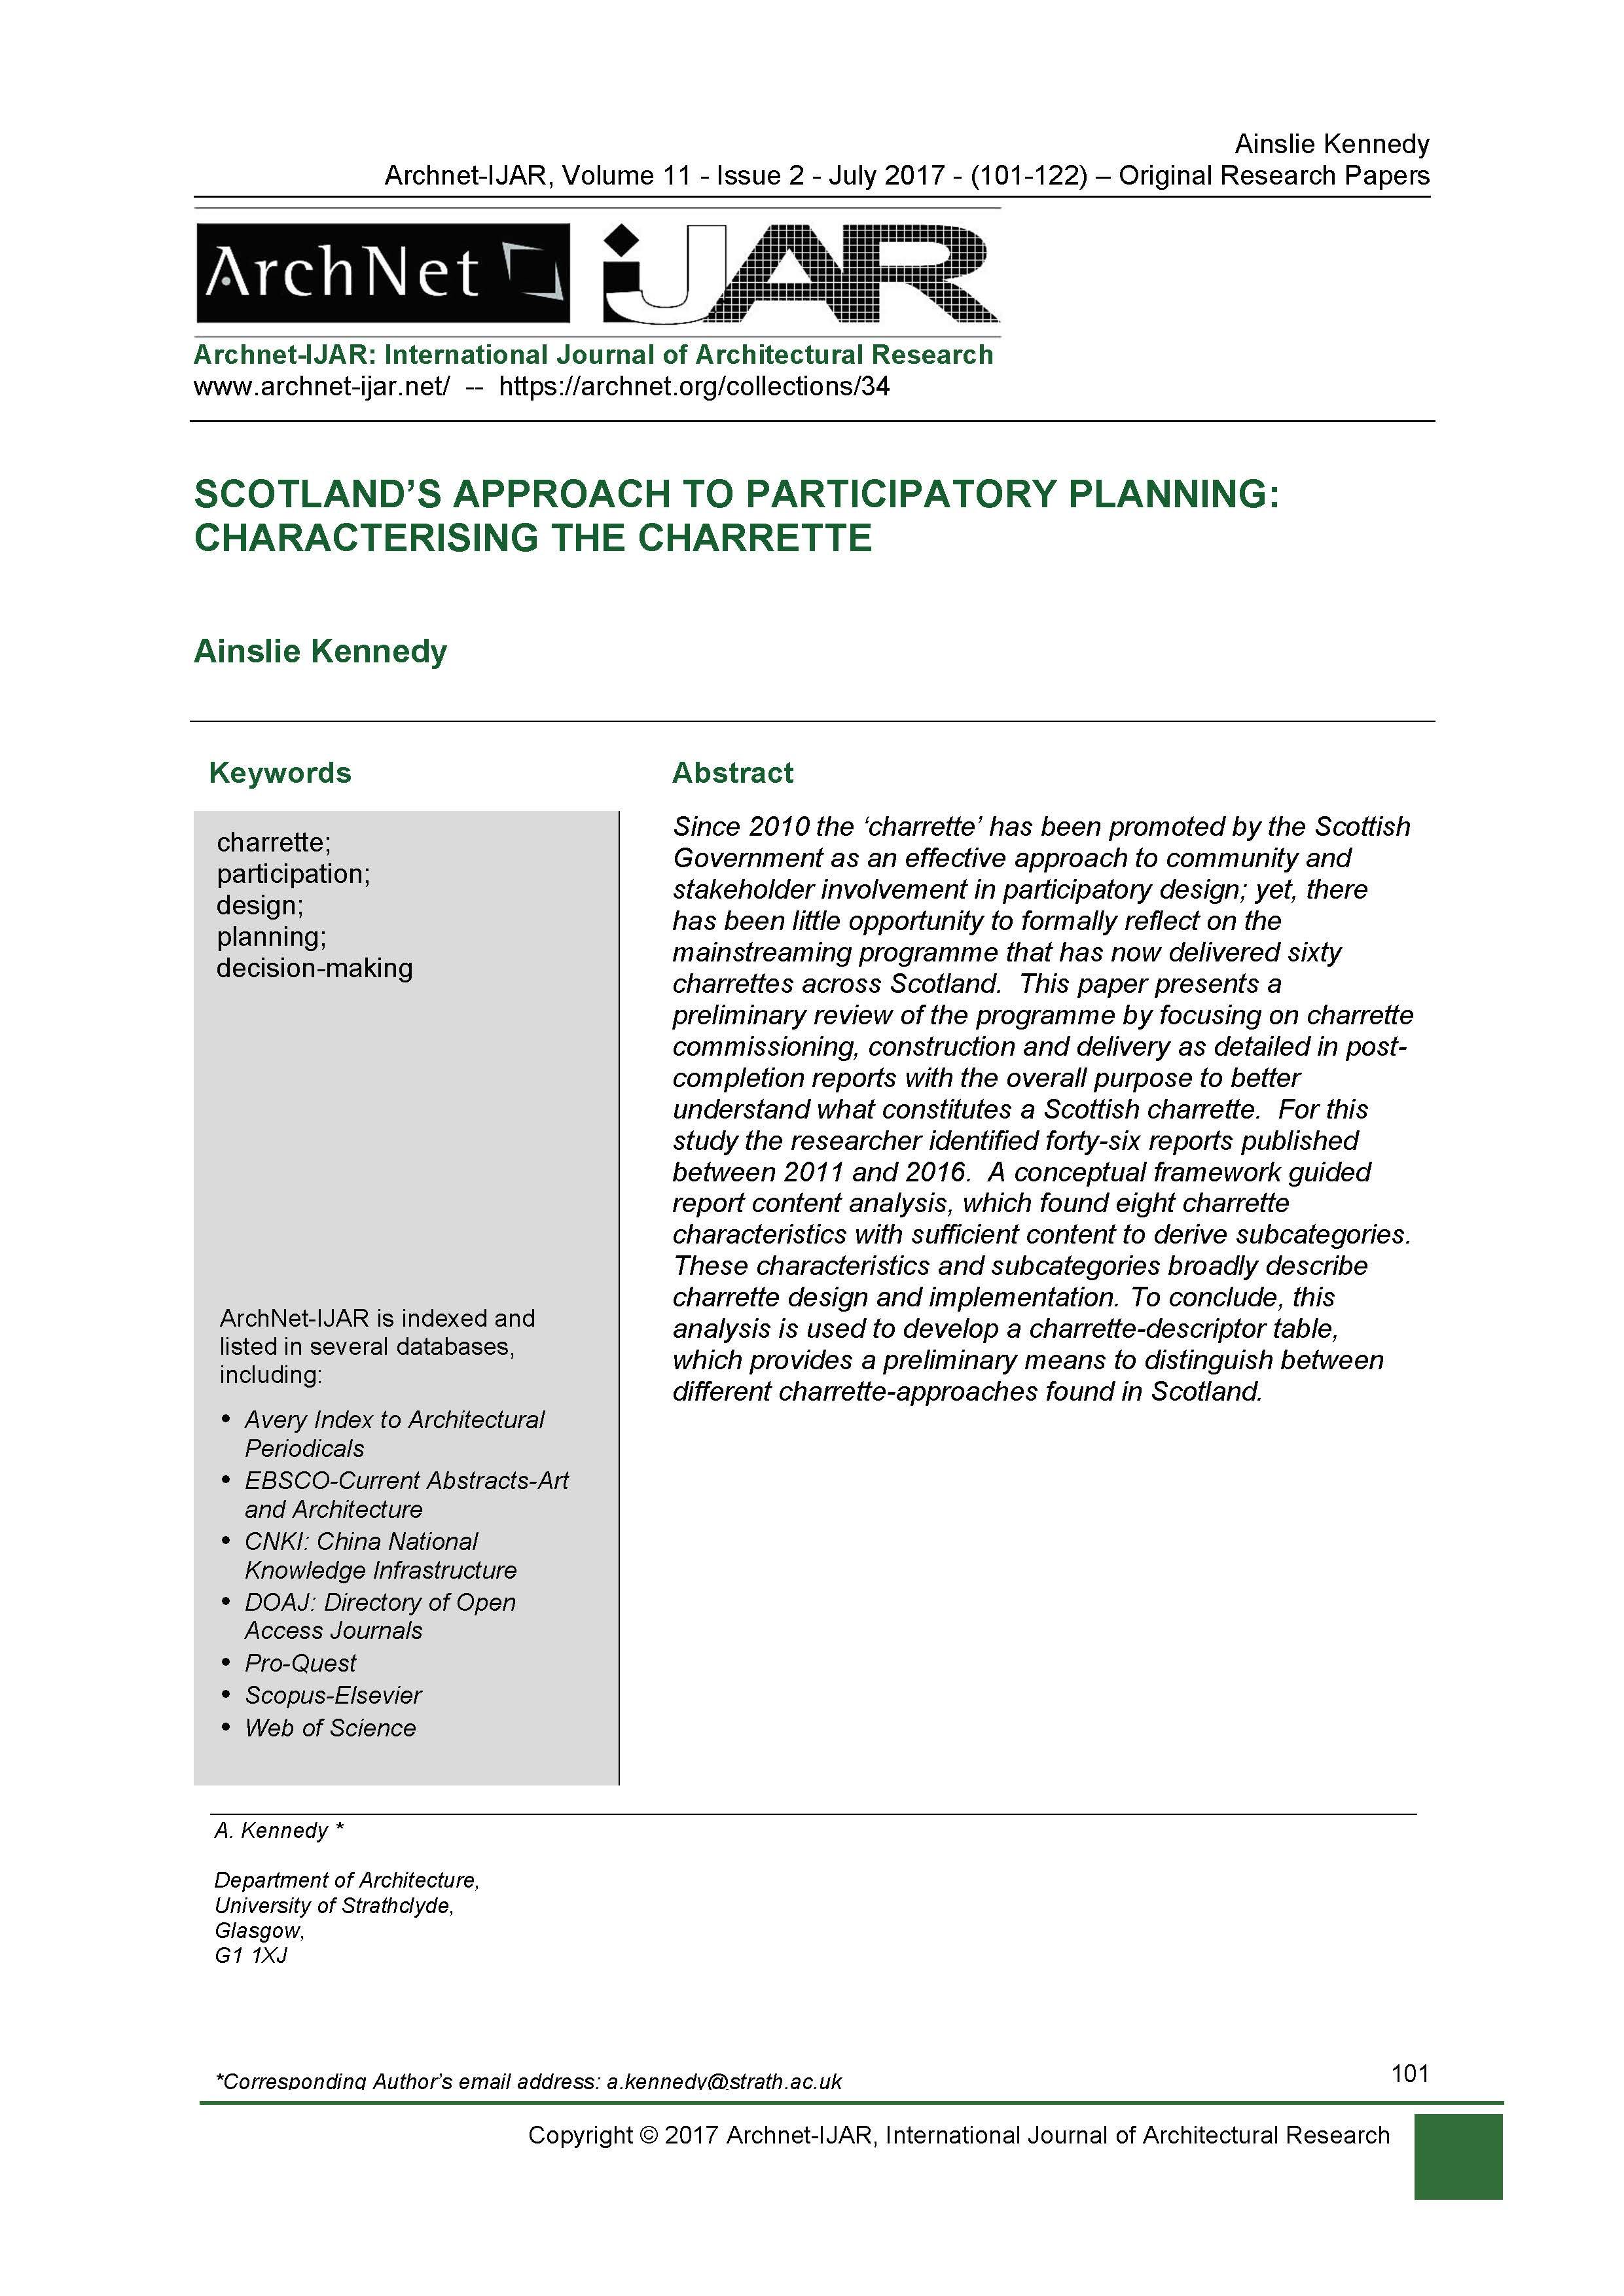 Scotland's Approach to Participatory Planning